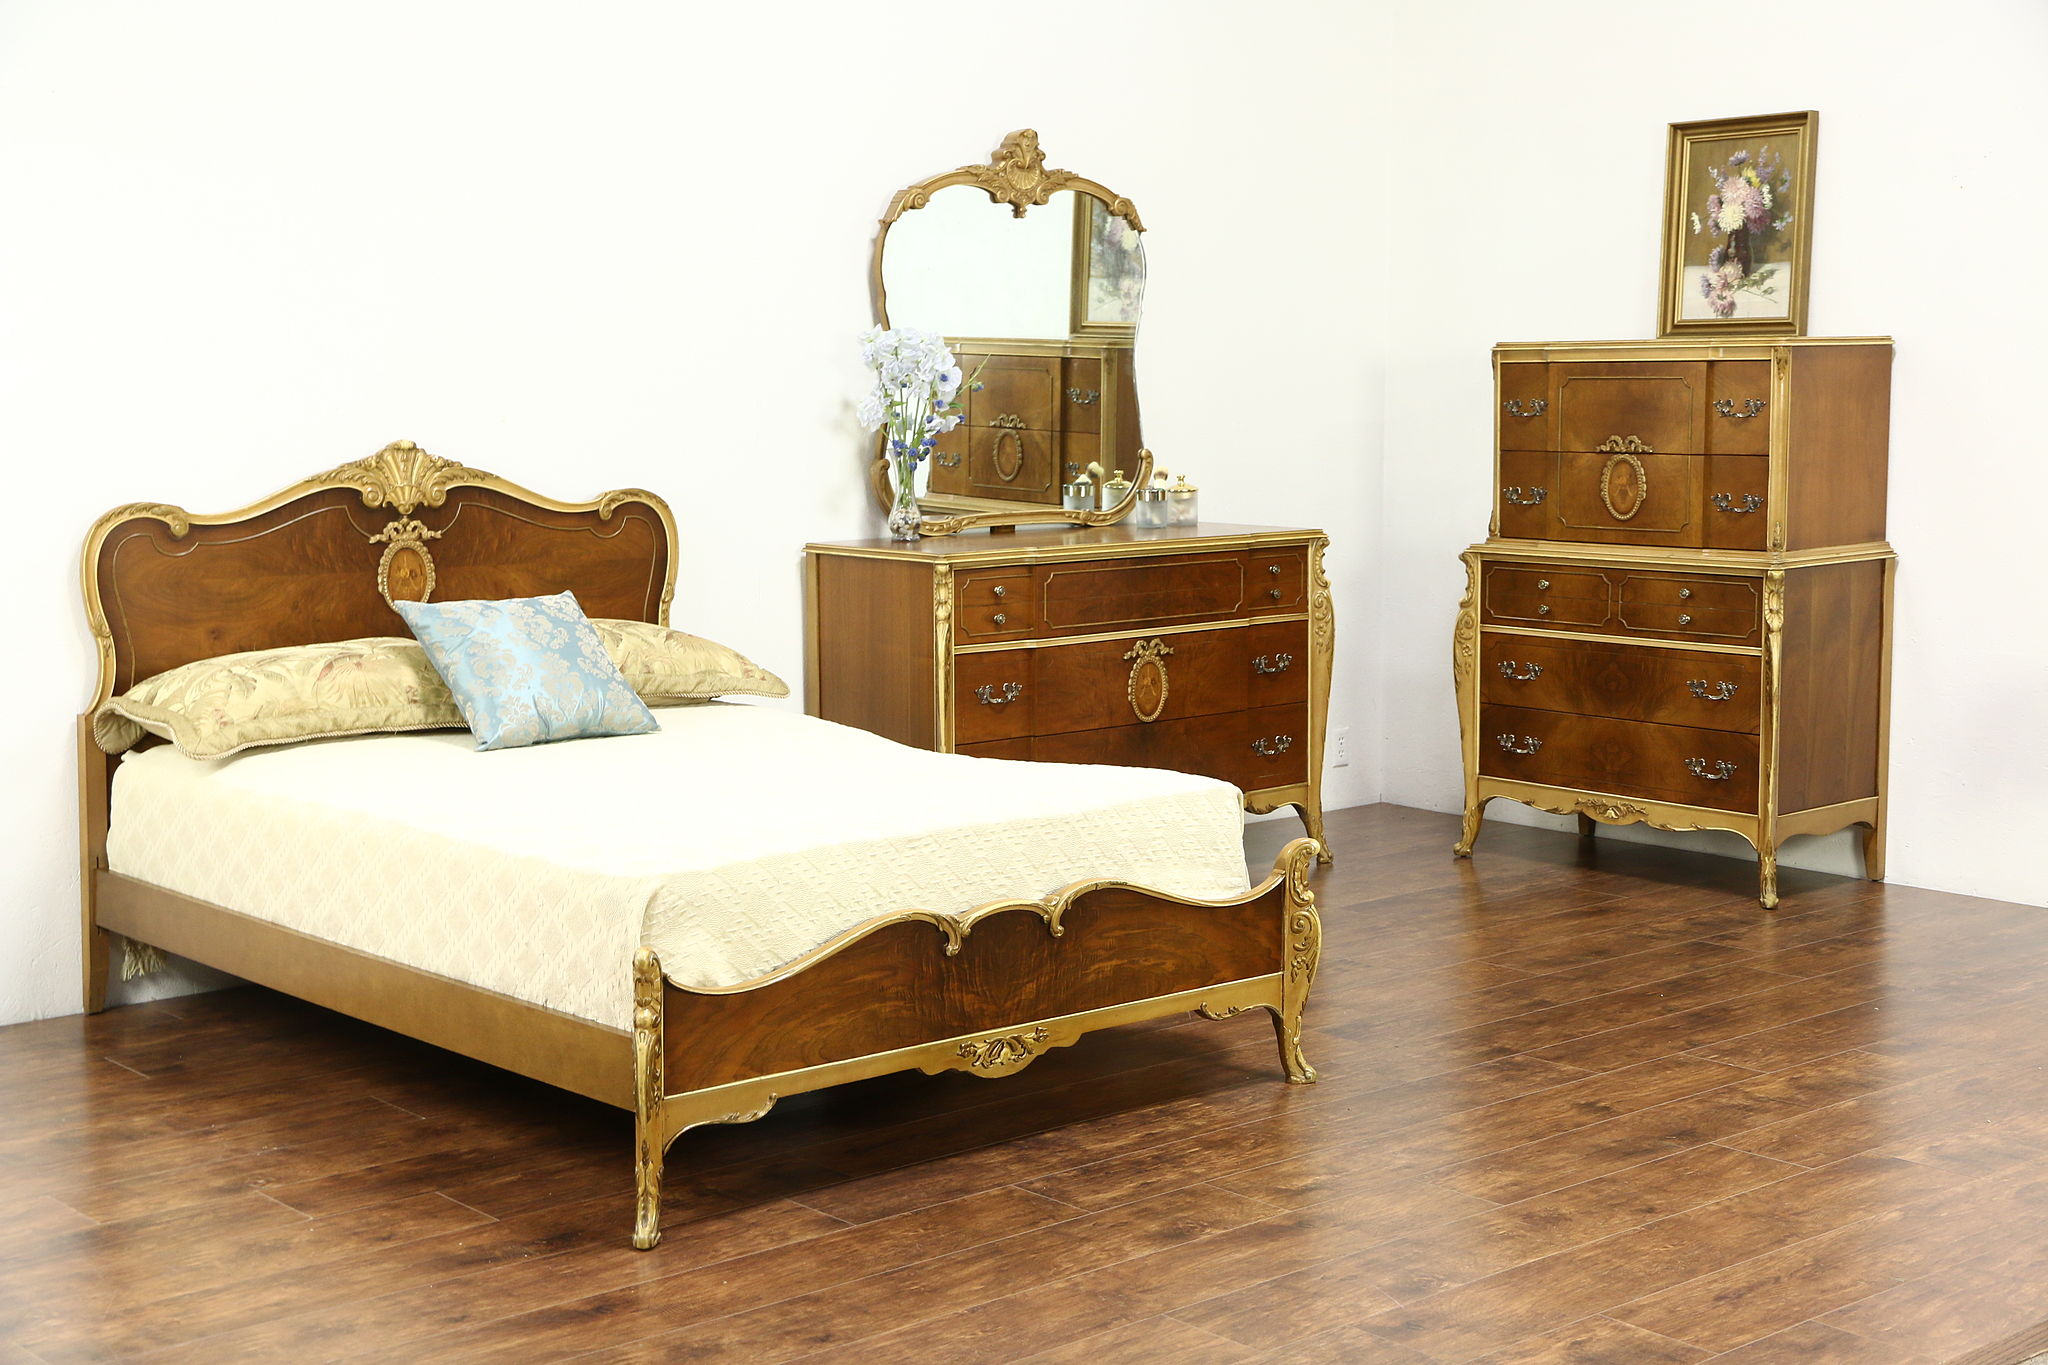 French Style 1940 S Vintage 3 Pc Bedroom Set Full Size Bed Signed Joerns